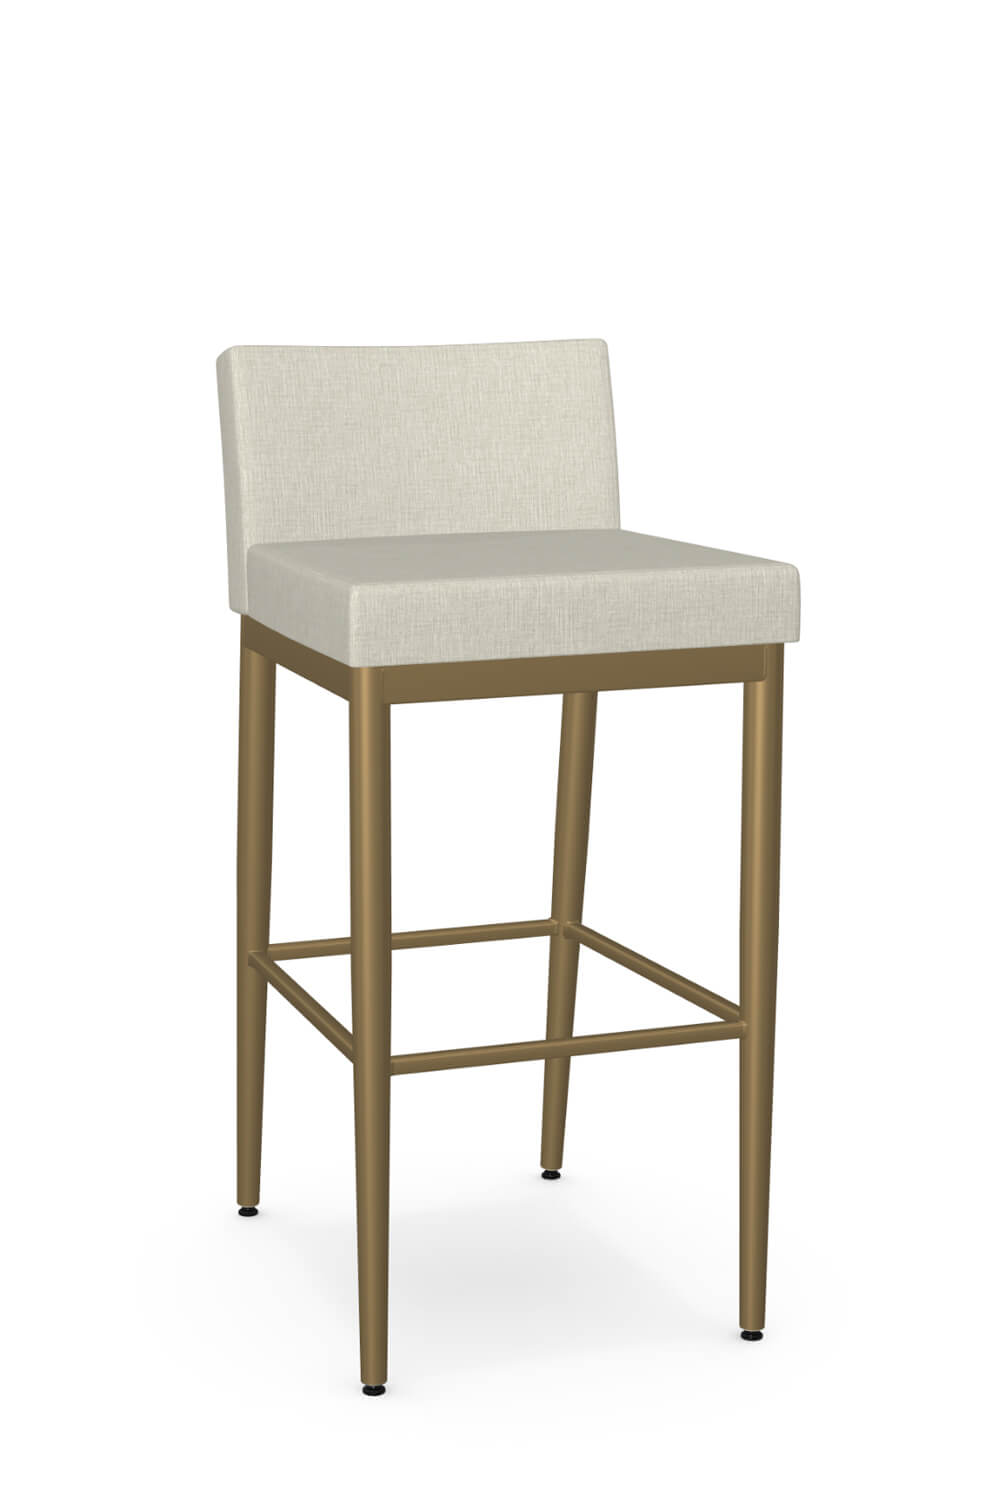 Hanson Modern Stool with Low Back